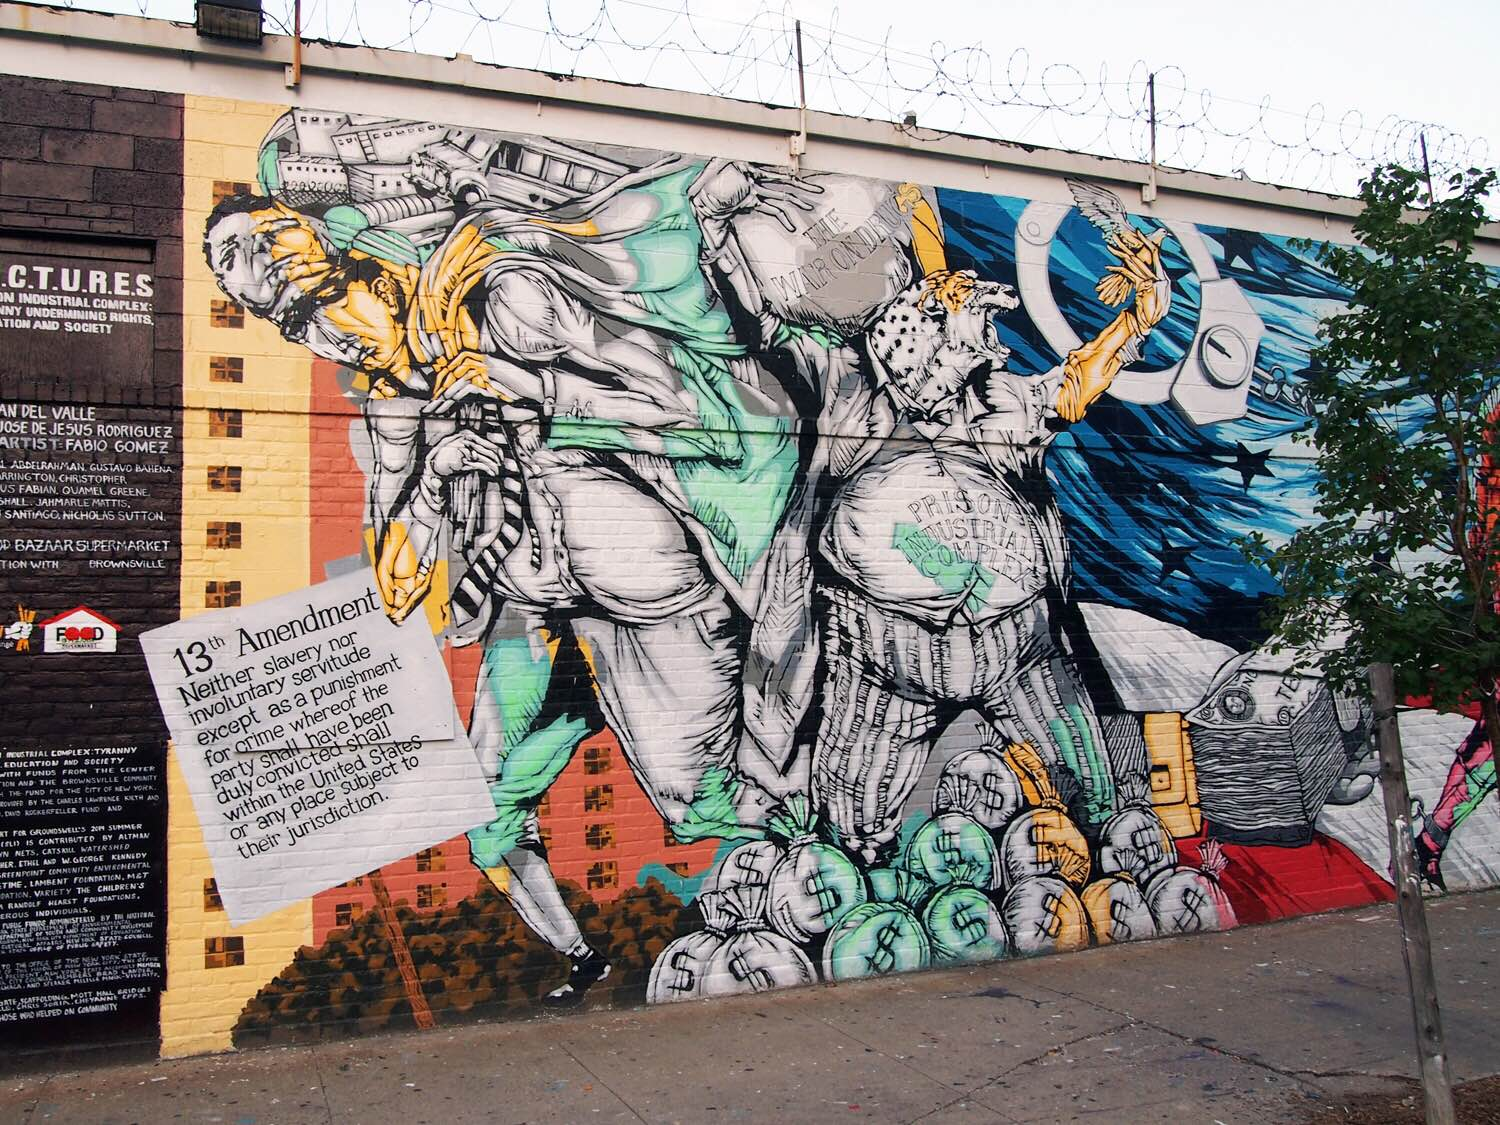 P.I.C.T.U.R.E.S. a collaborative mural project in Brownsville, Brooklynwith Groundswell youth artists